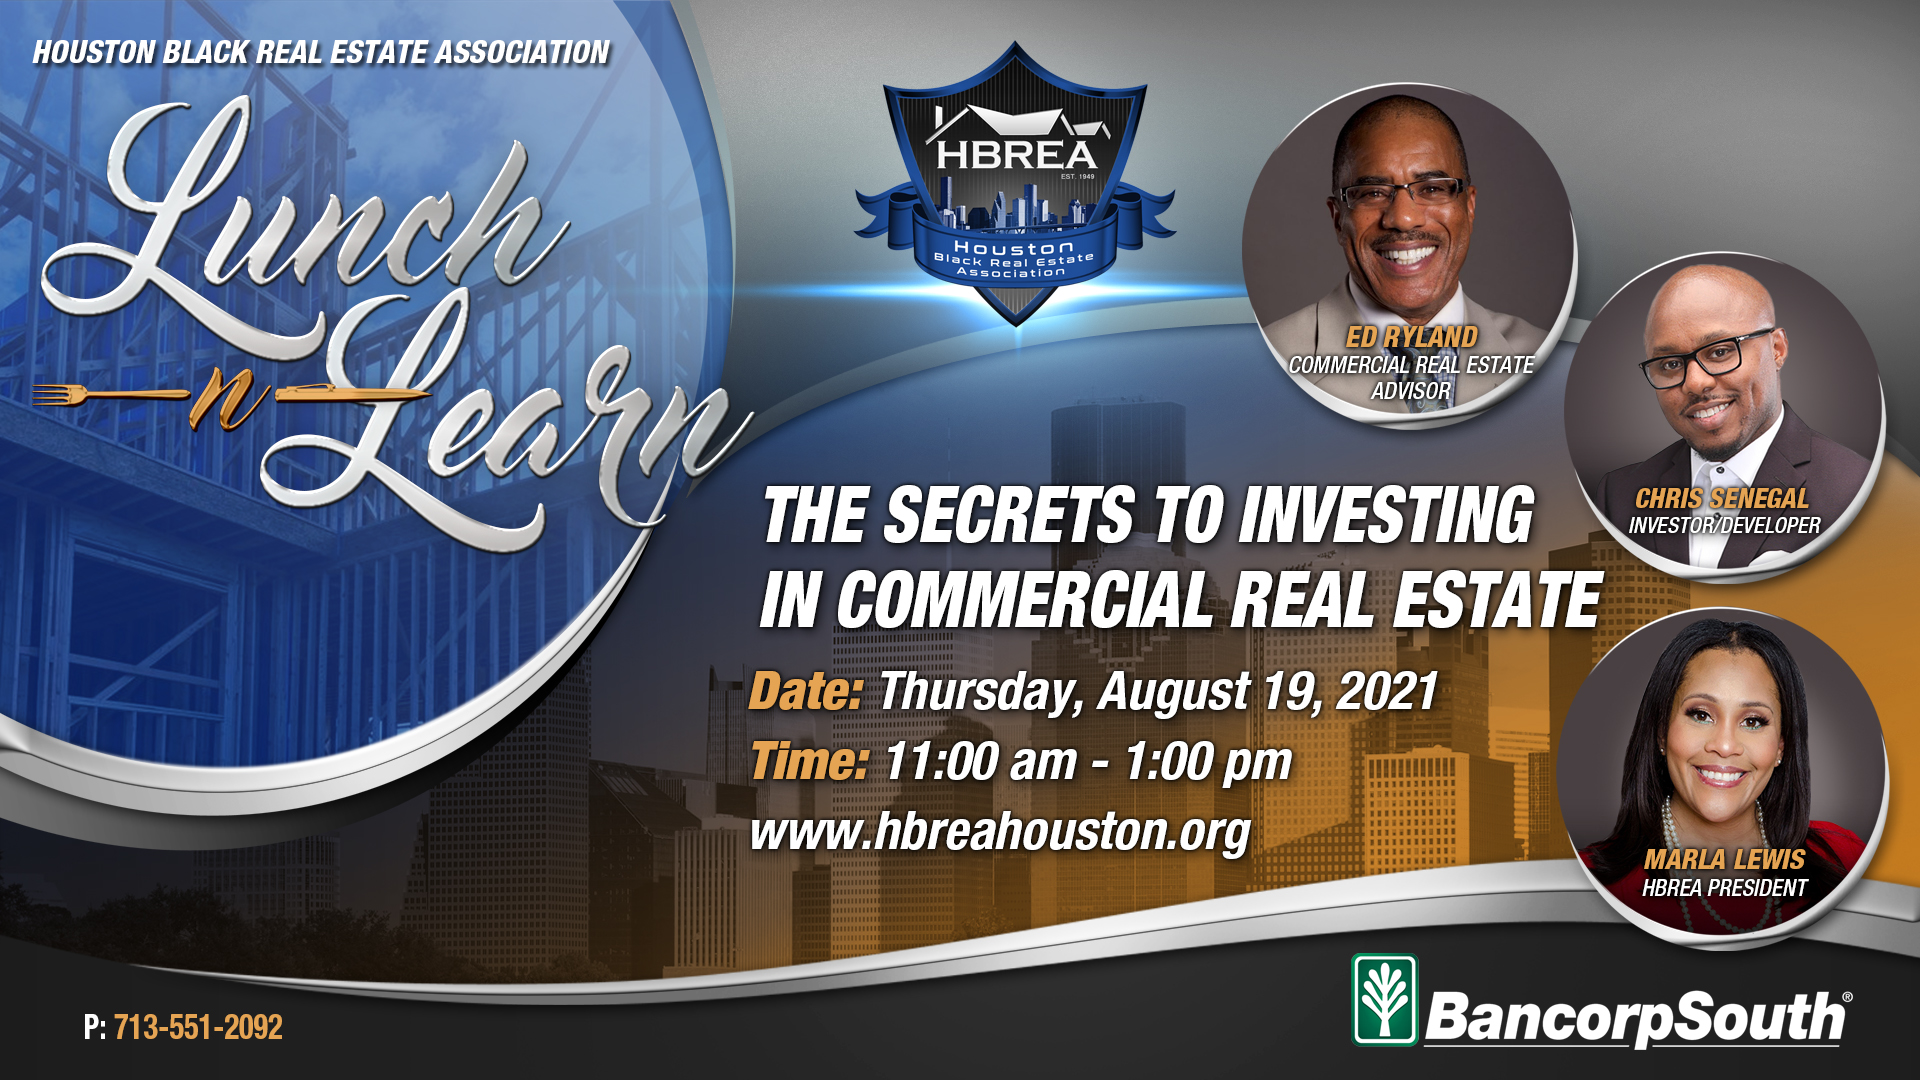 Lunch-n-Learn - The Secrets to Investing in Commercial Real Estate